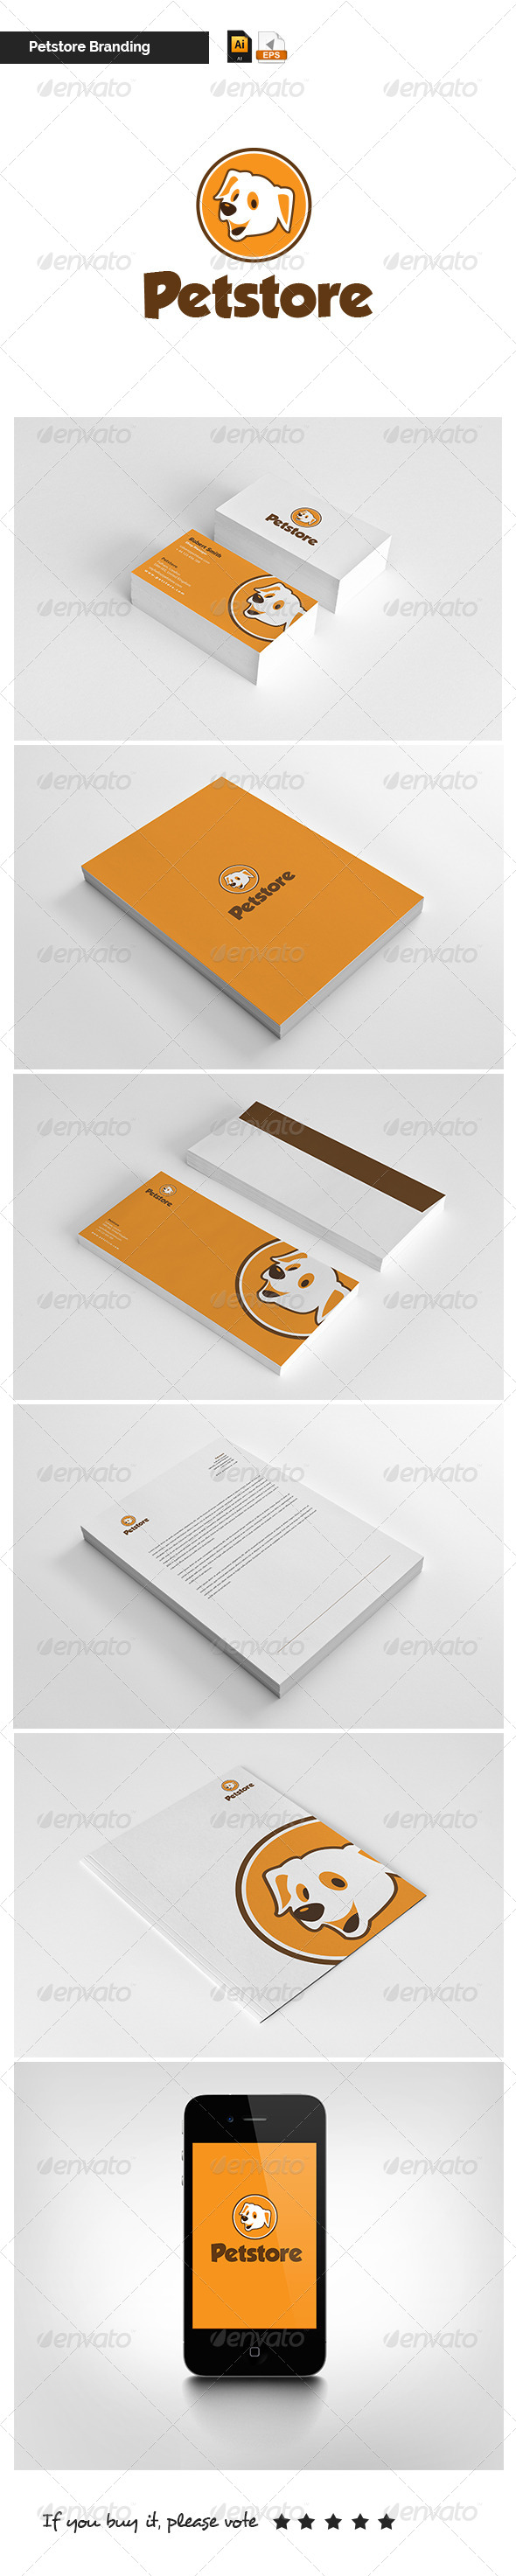 GraphicRiver Modern Stationary Petstore 5251736